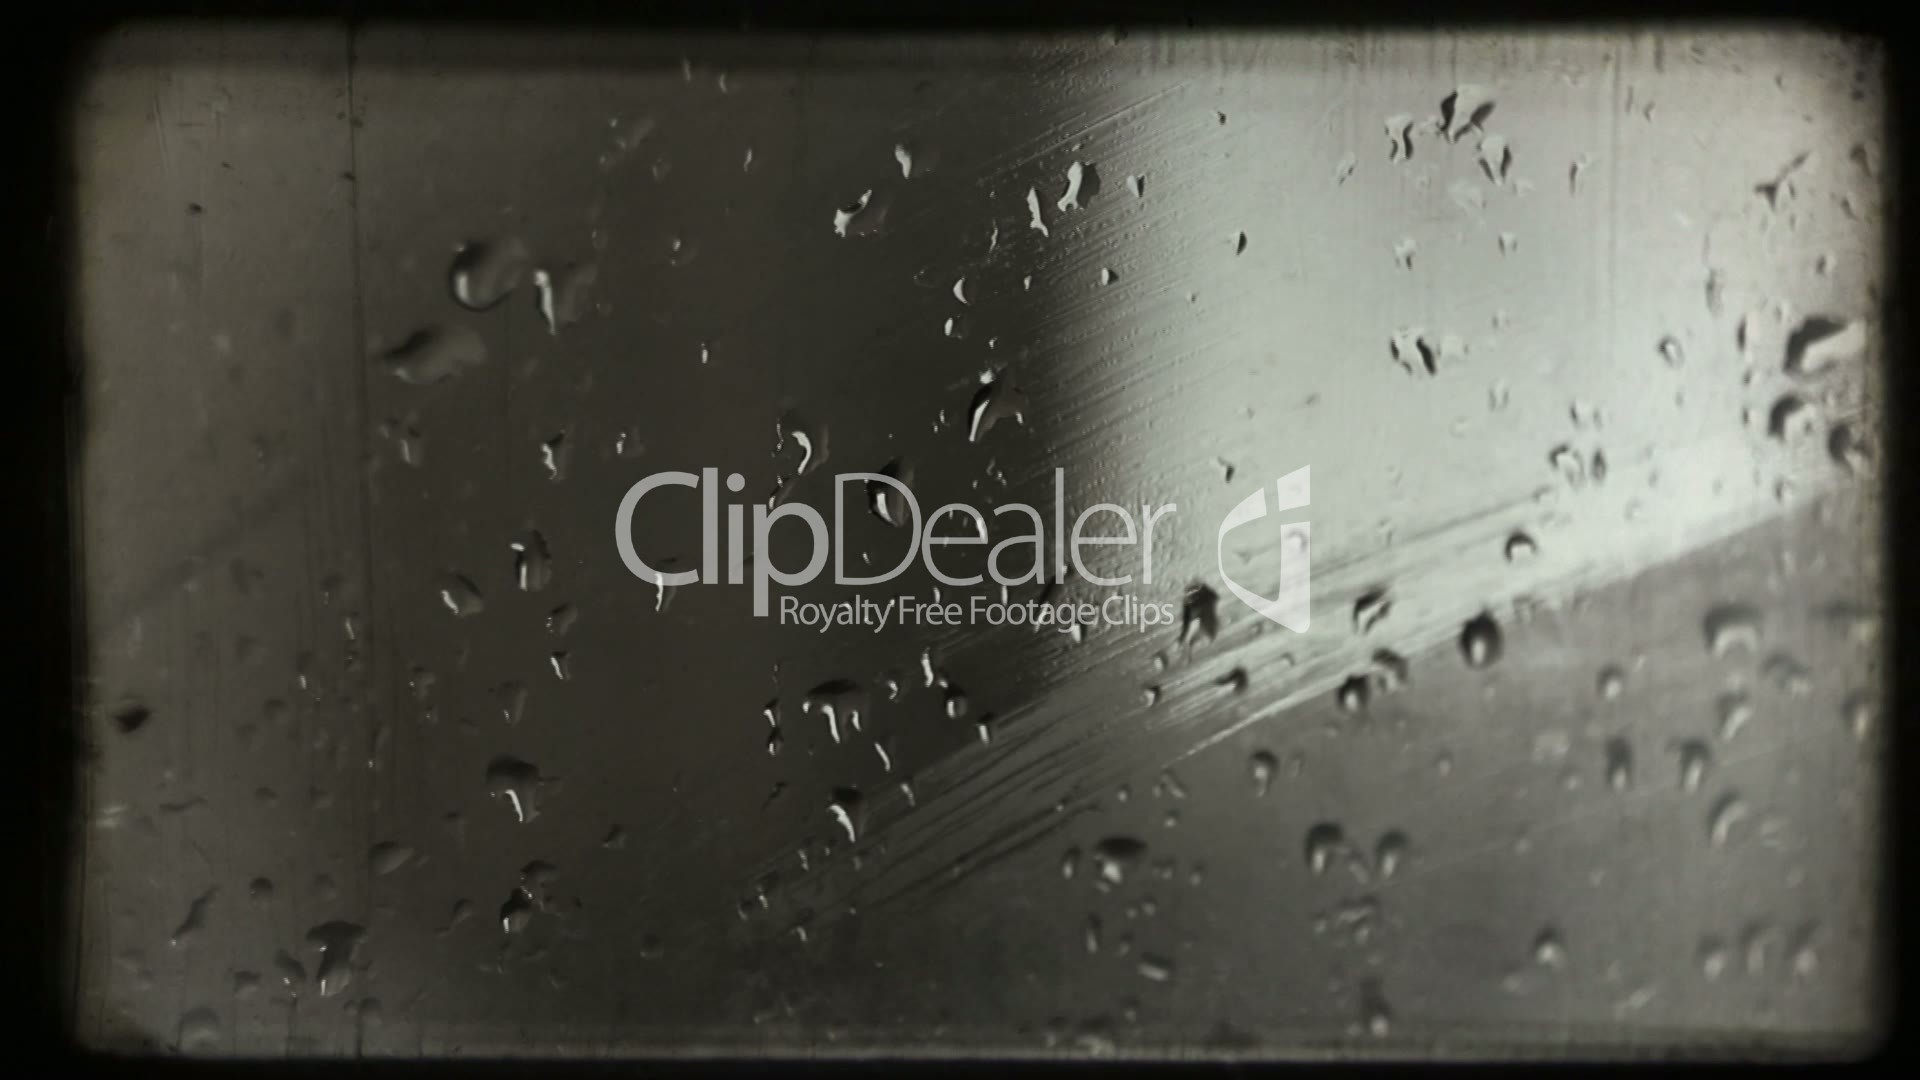 Hand wipes misted glass. Old film.: Lizenzfreie Stock Videos und Clips